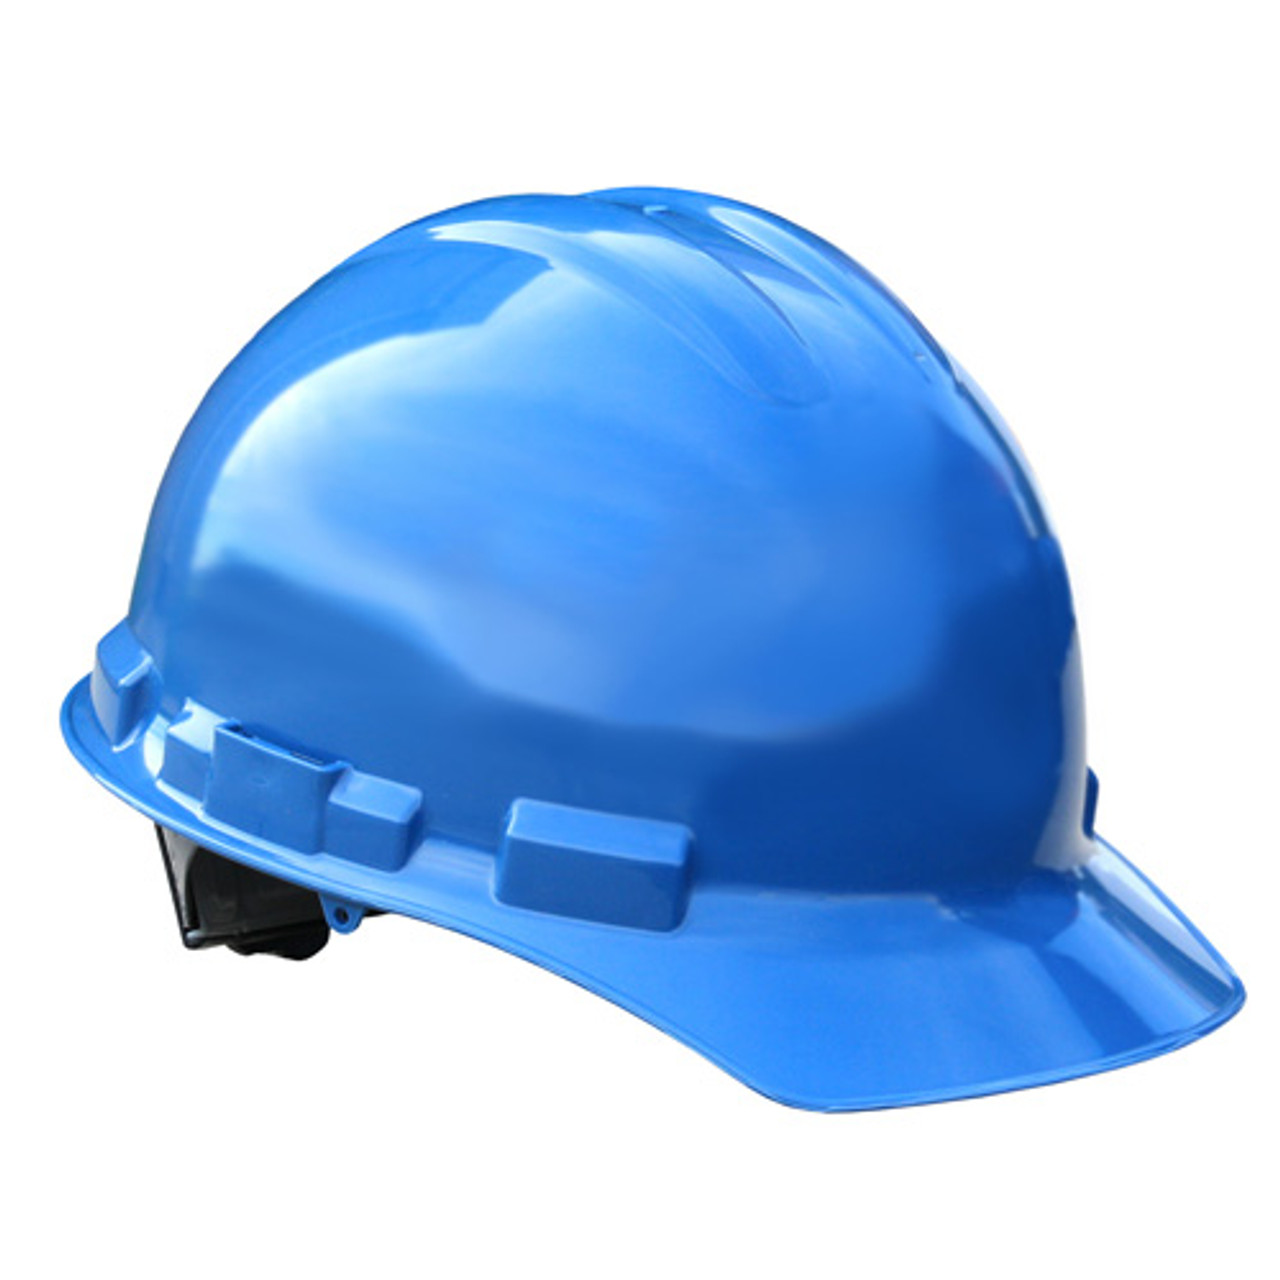 Blue Radians Hard Hat with Ratchet Suspension  Made in The USA